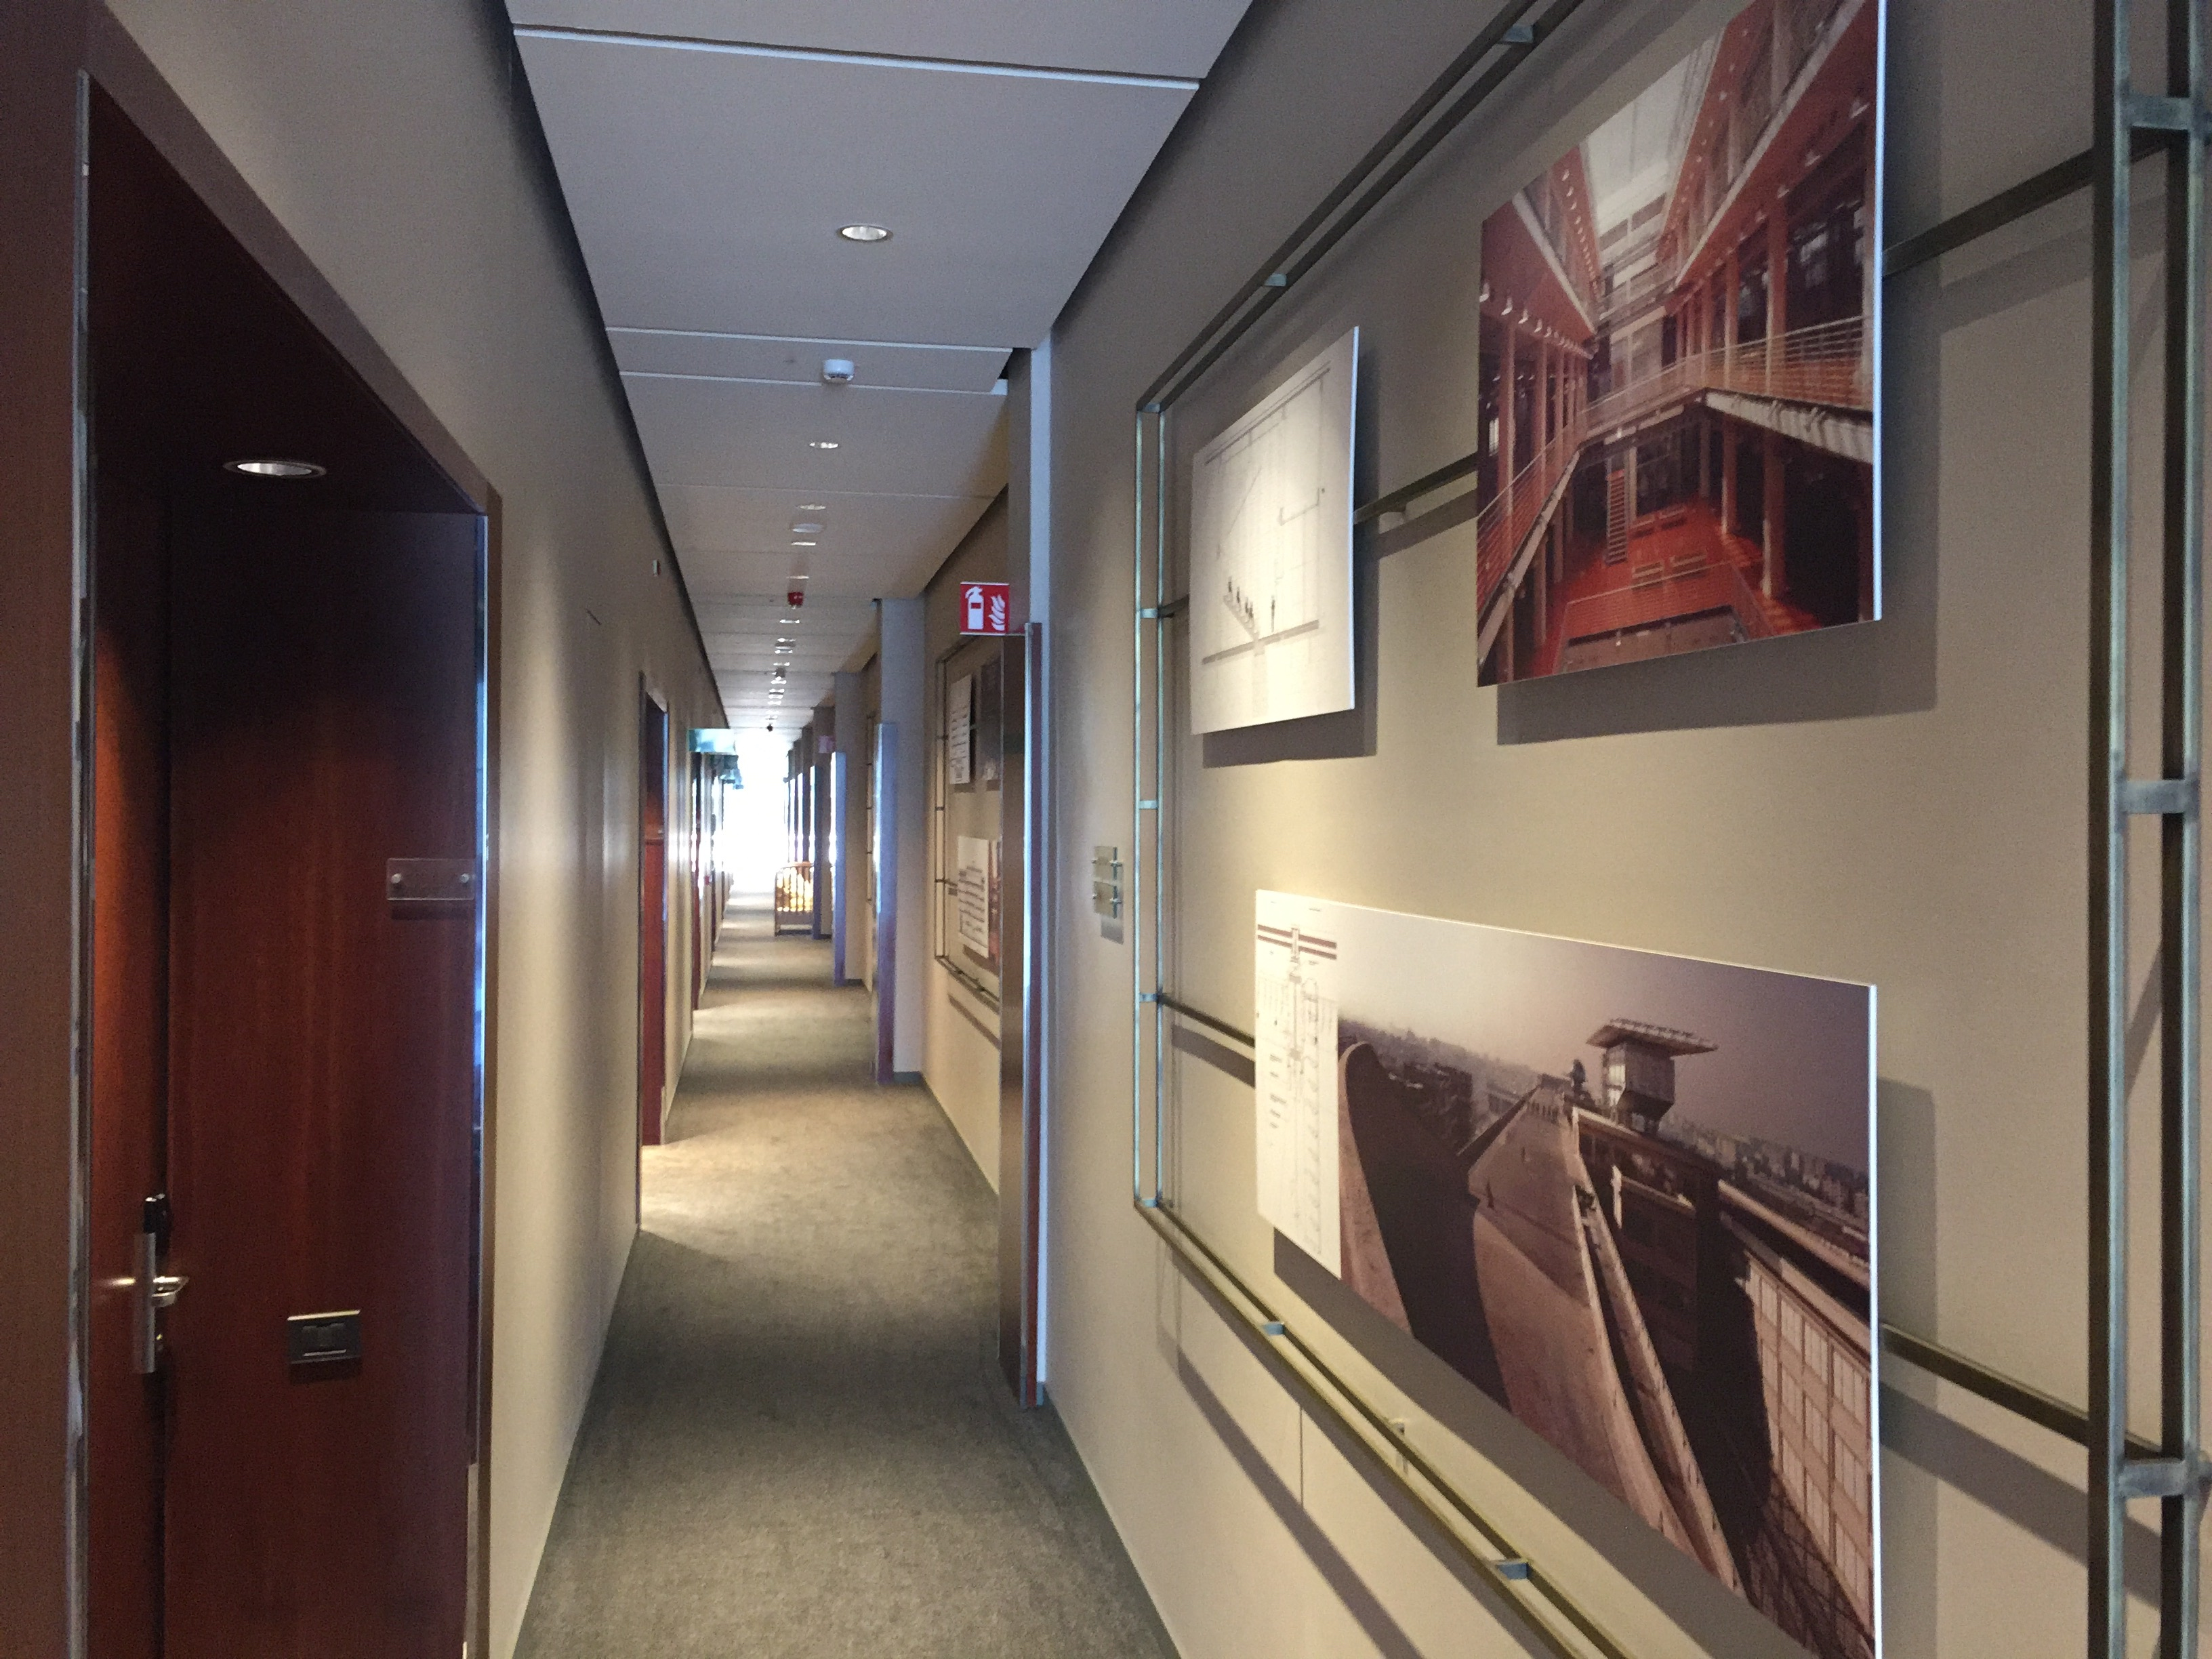 DoubleTree Turin Lingotto hallway that features photos of the former Fiat factory.